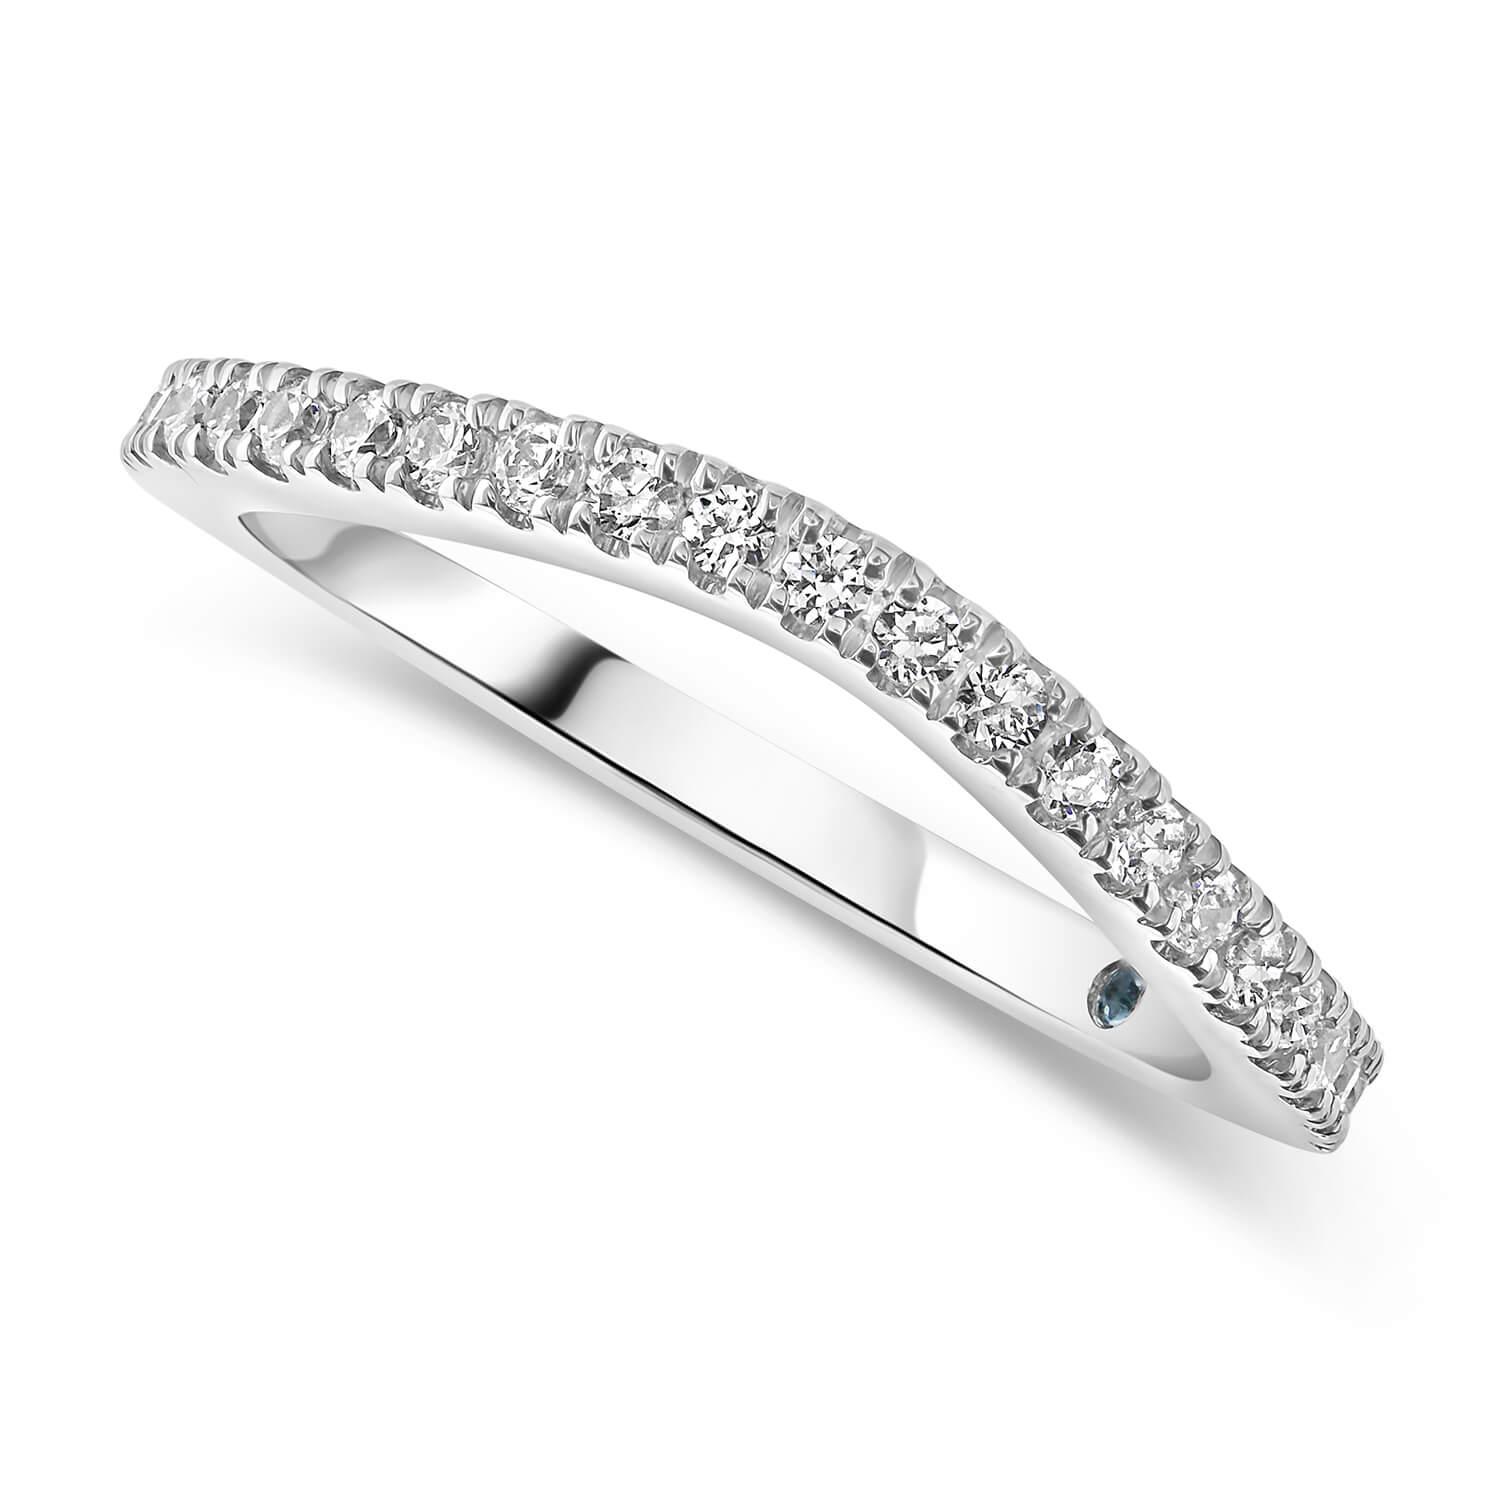 Kathy de Stafford 18ct White Gold Claw Set Dip Ring 0.20ct